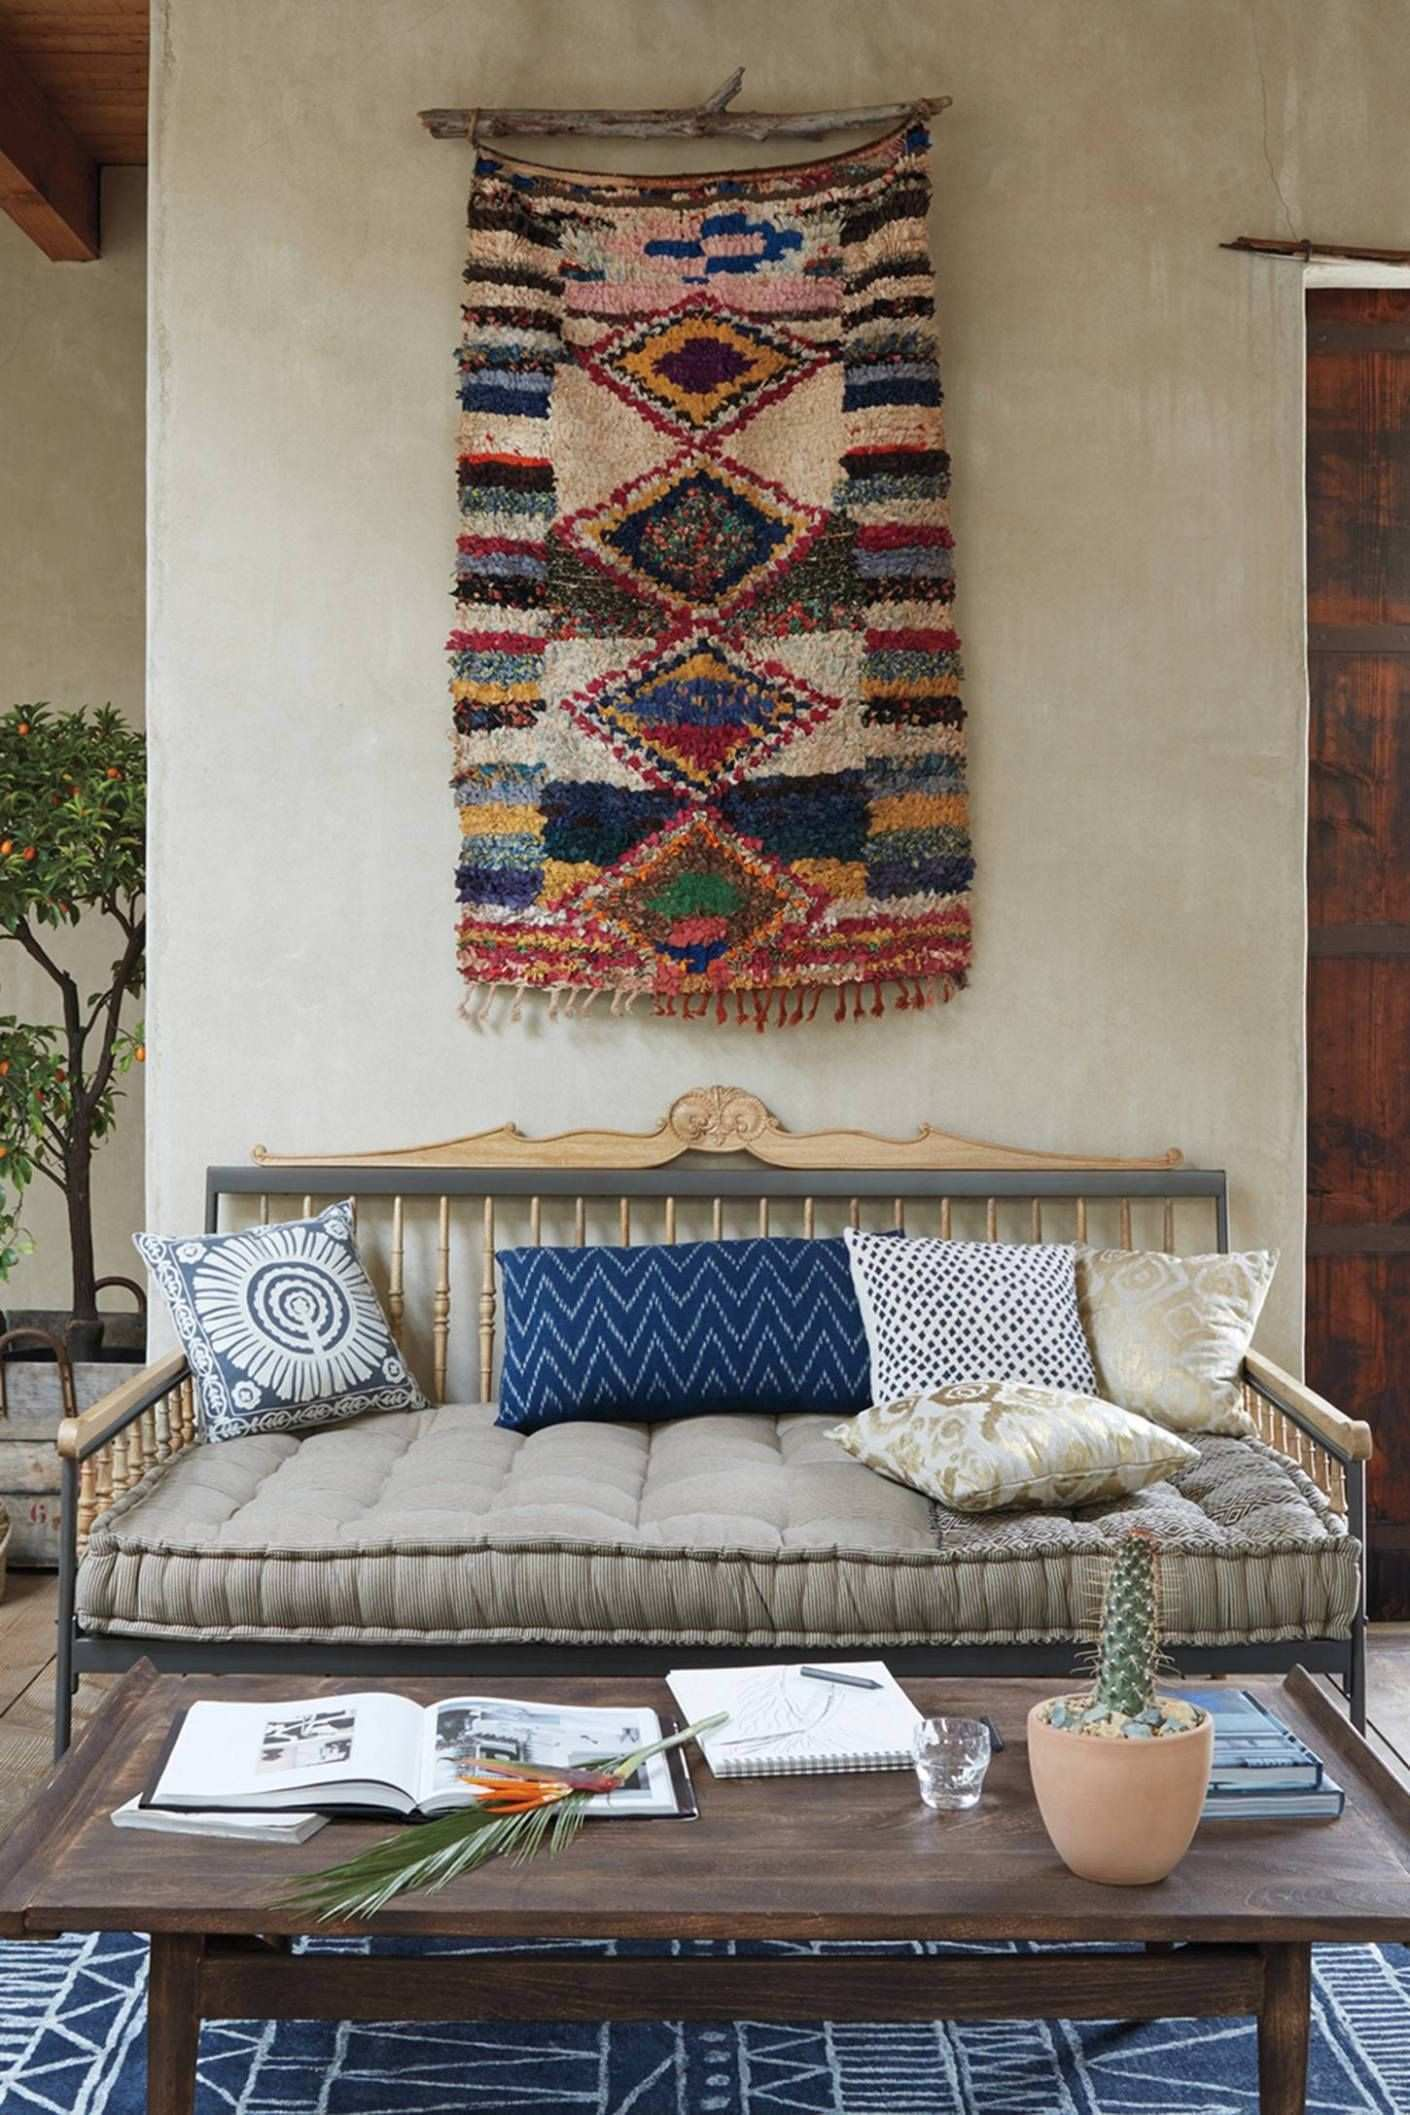 Anthropologie s New Arrivals Moroccan Boucharouette Wall Decor